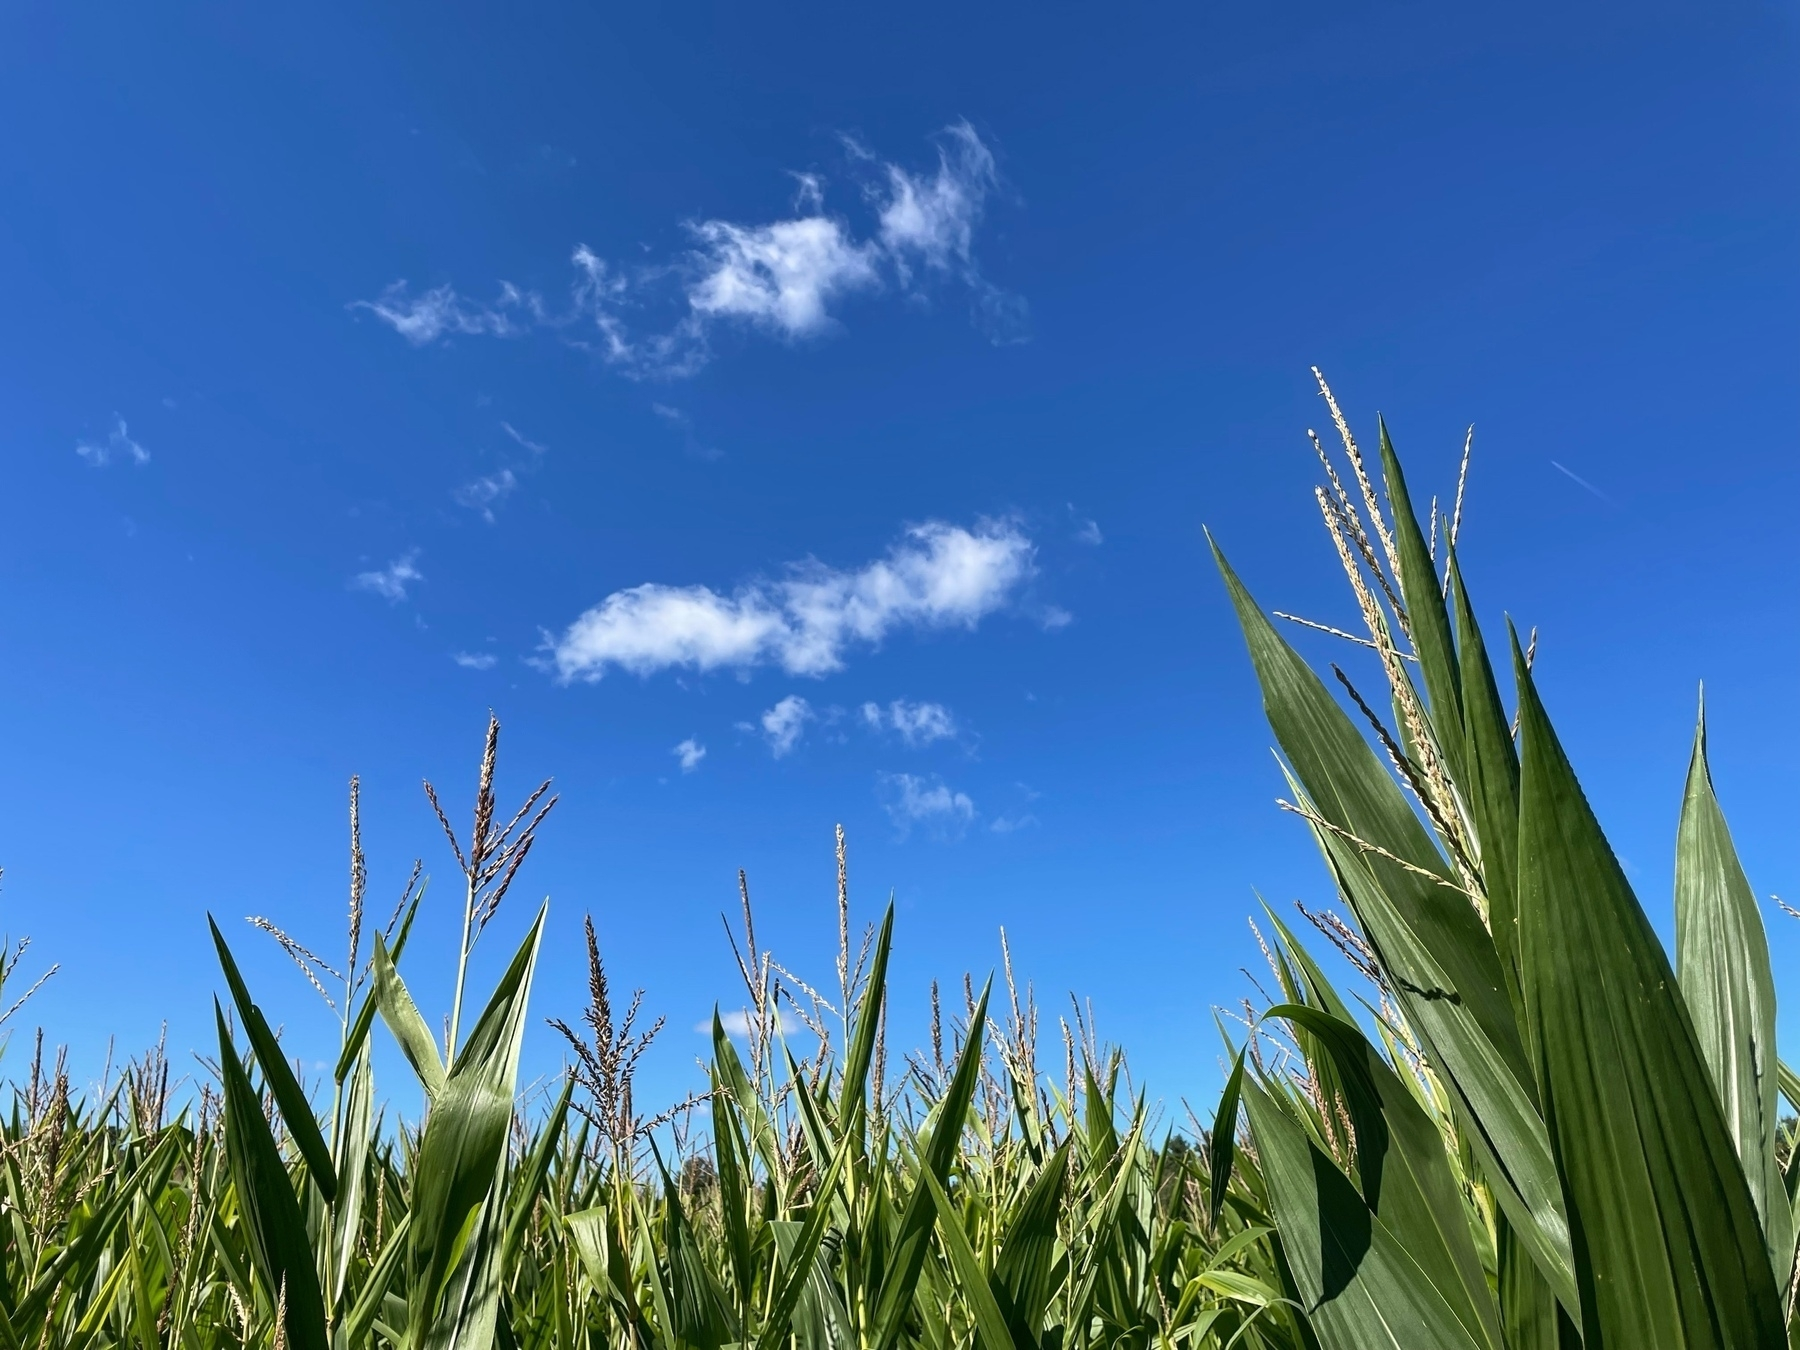 tall corn under a blue sky with wispy clouds